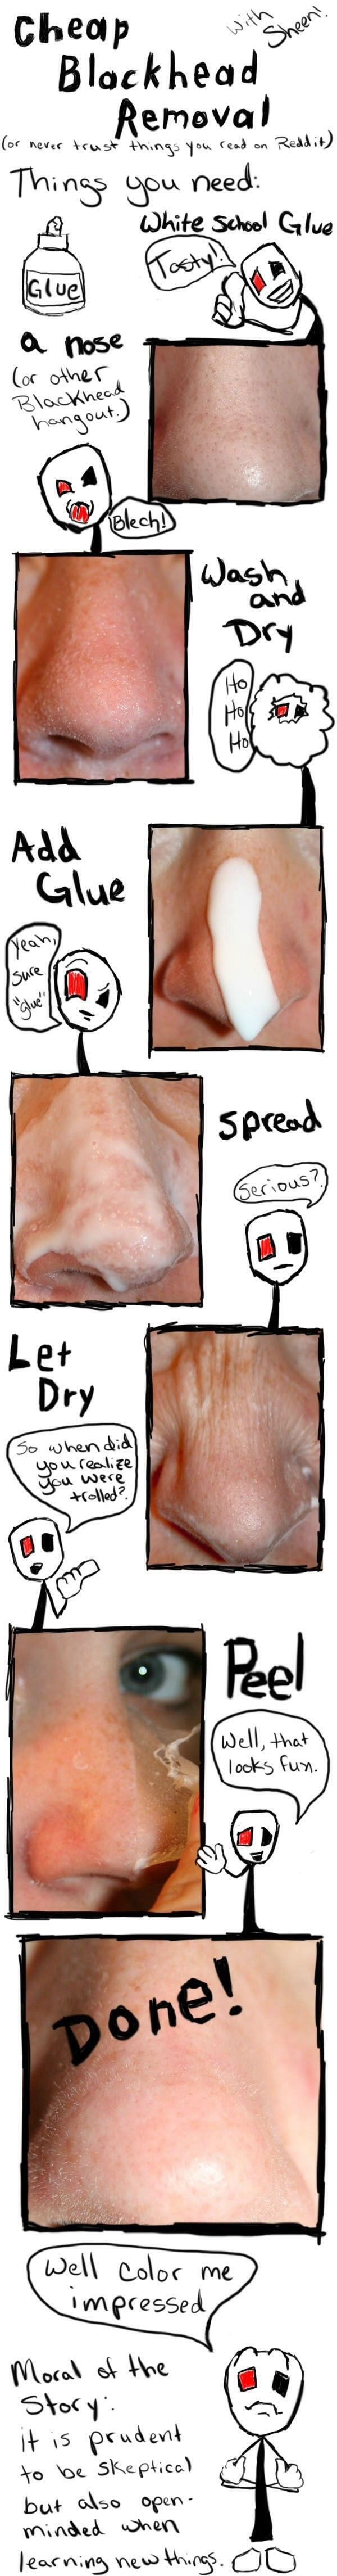 15. Lastly, be wary of certain tips you read online. Glue MIGHT remove blackheads, but it really doesn't seem like it's a great thing to put on your skin.